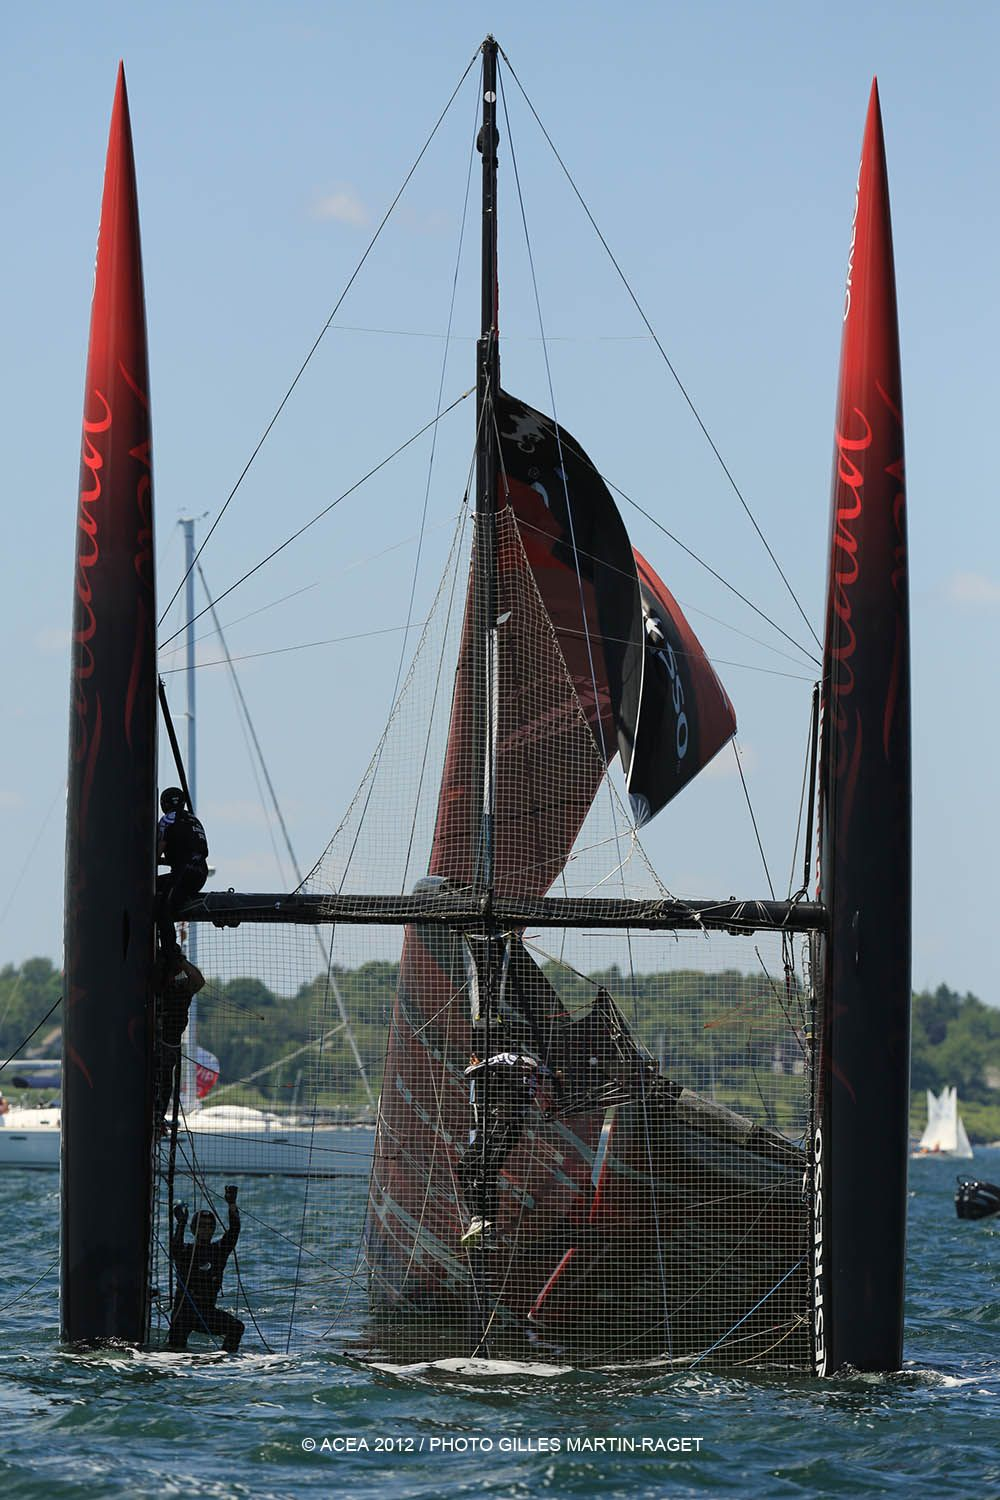 Emirates Team NZ capsizes - do you you think you went?